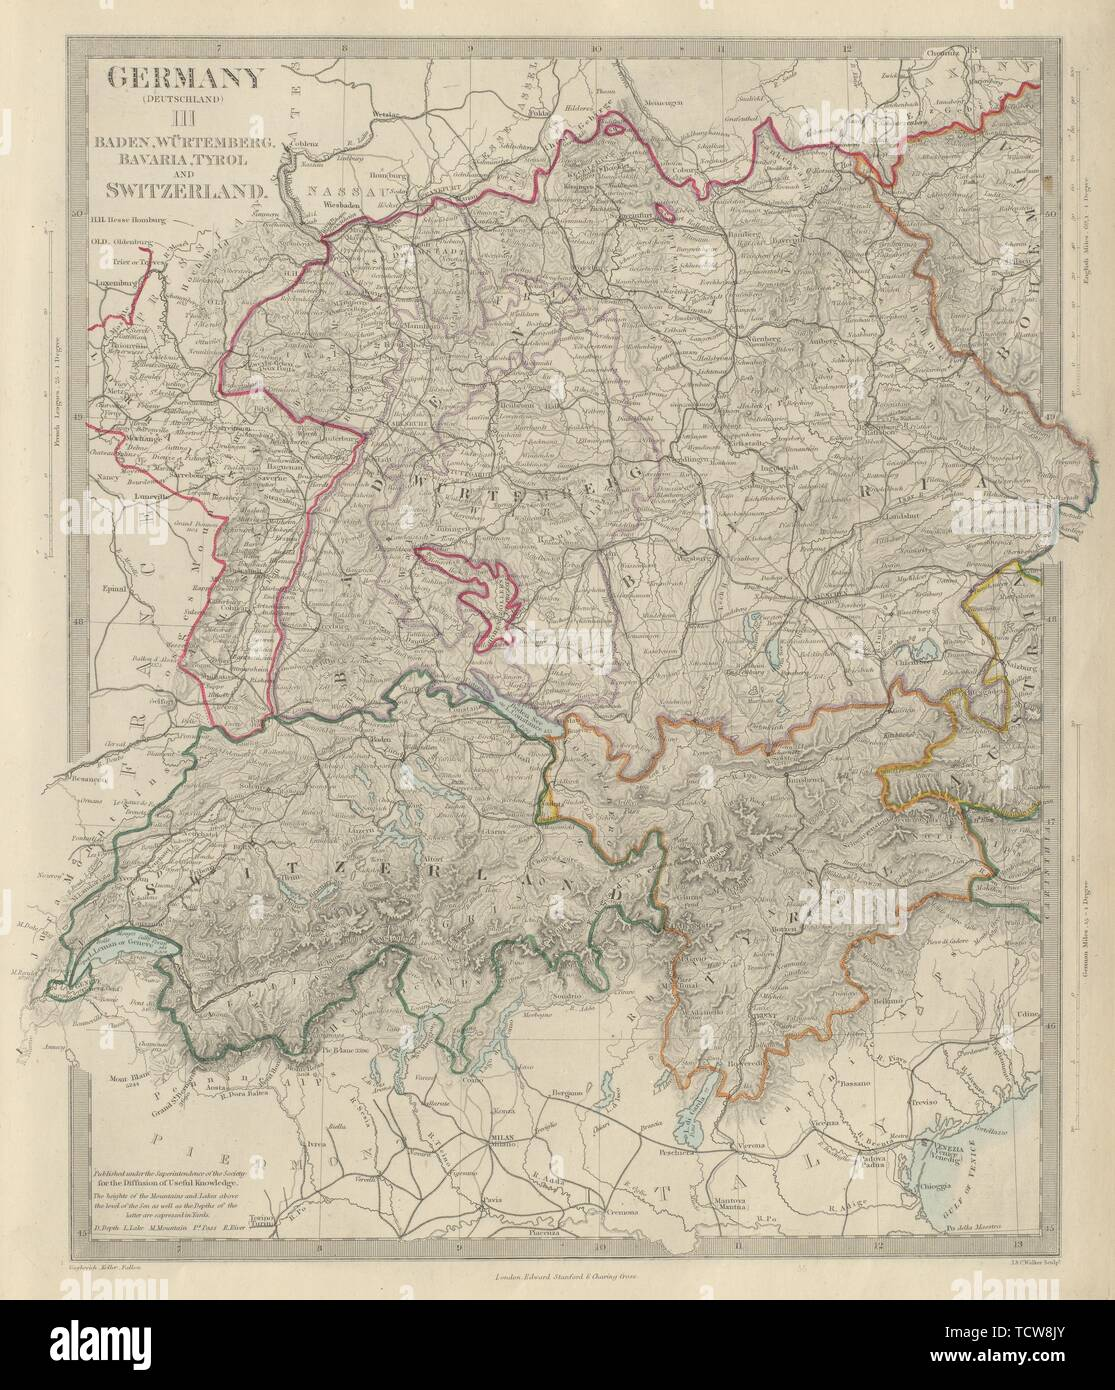 Map Of Germany And Switzerland.Germany South Switzerland Austria Baden Wurttemberg Bavaria Tyrol